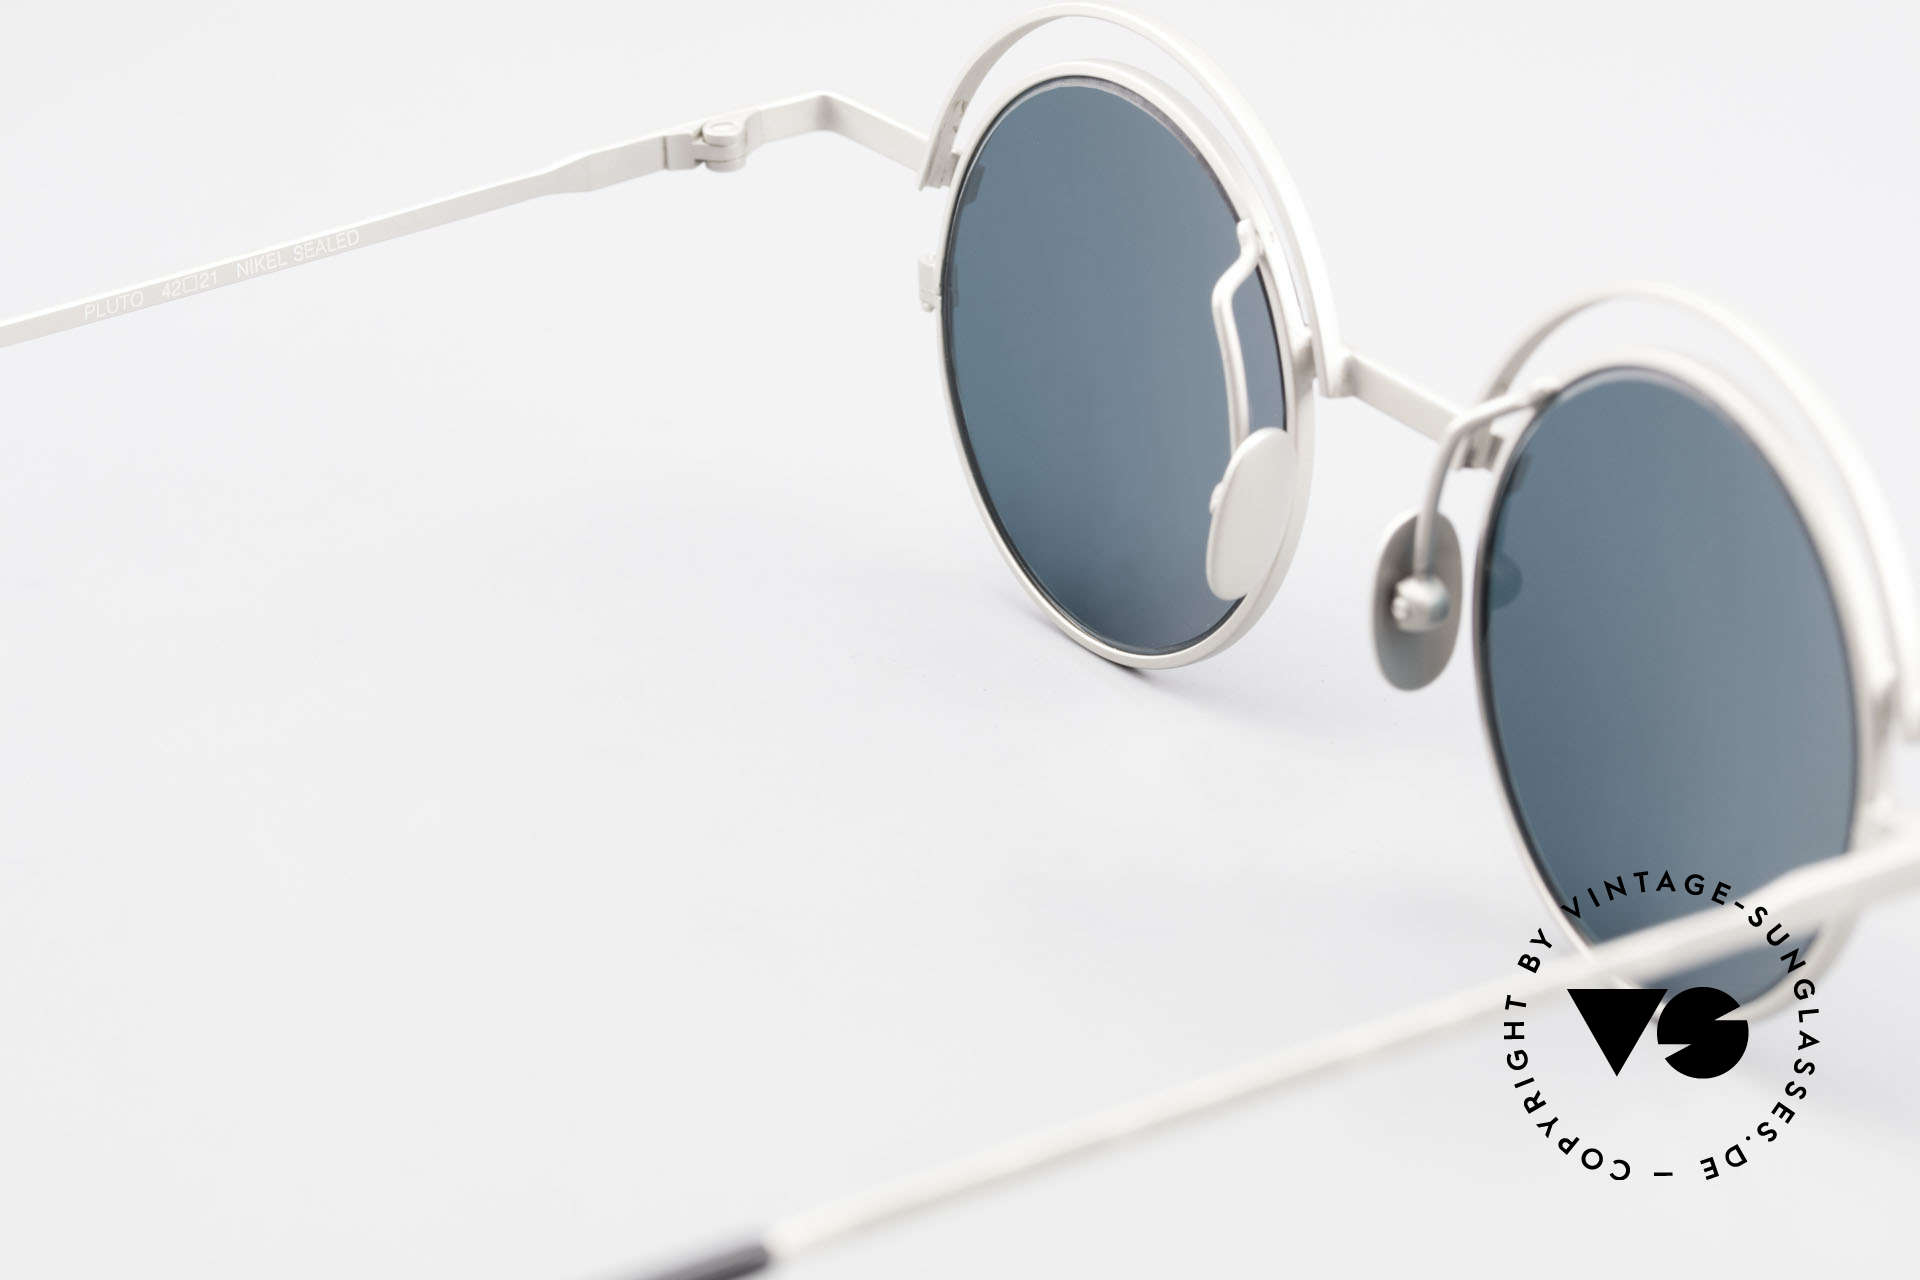 IMAGO Pluto Round Designer Sunglasses, sun lenses (100% UV) can be replaced with prescriptions, Made for Men and Women